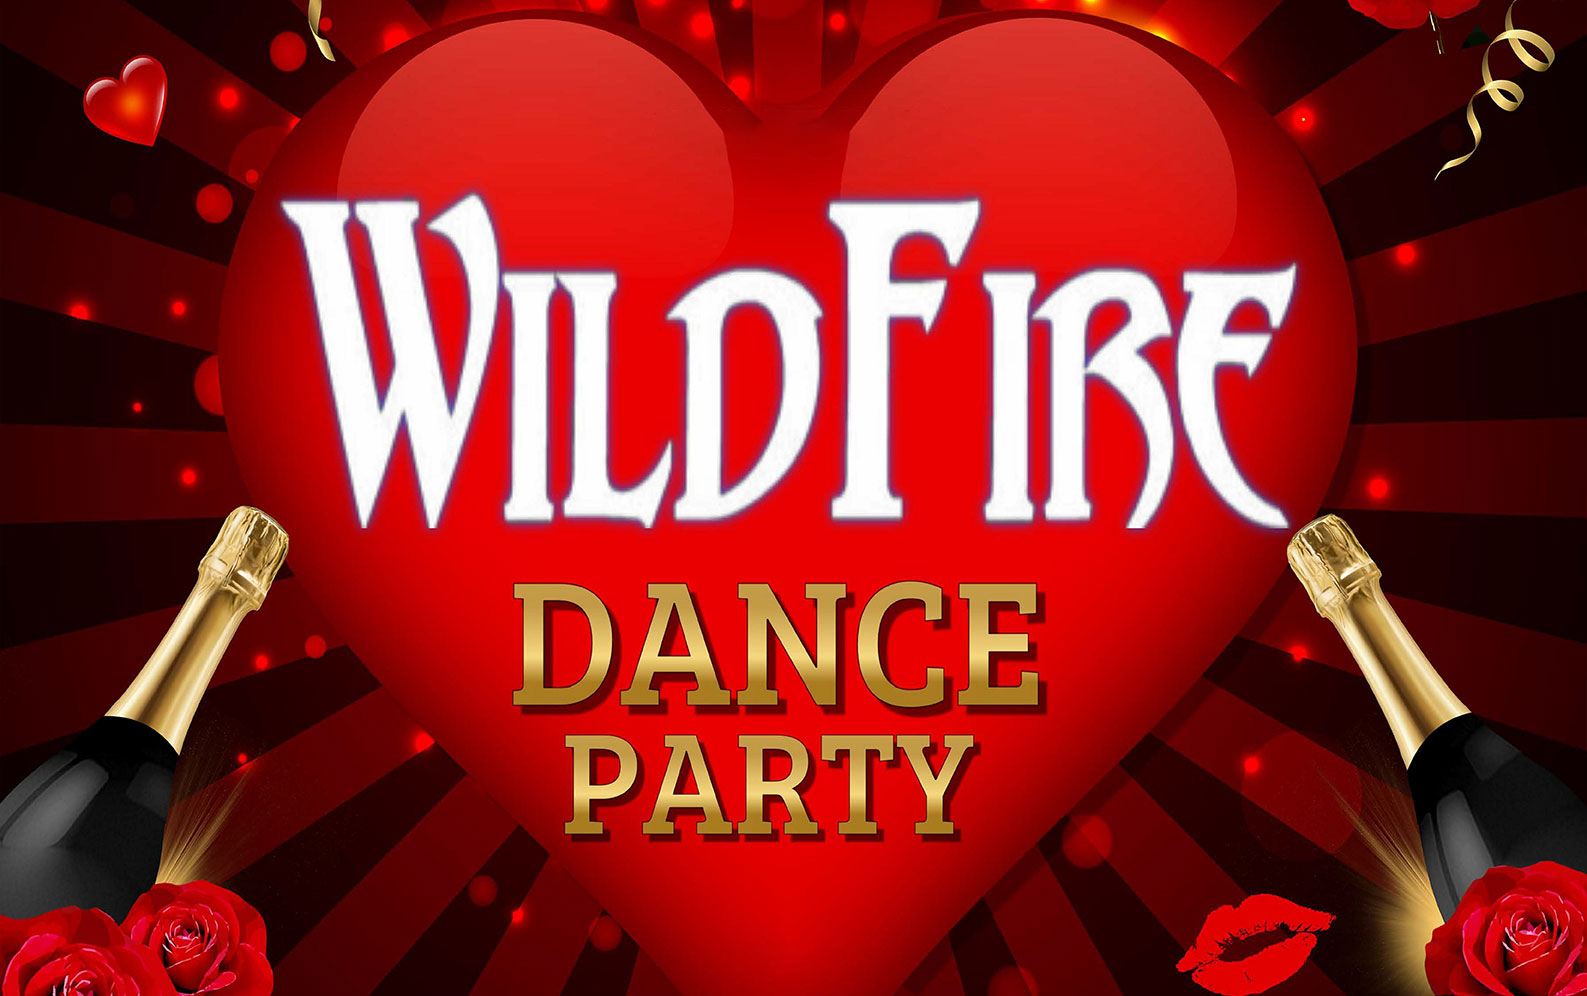 Valentine Dance Party Bash ft. WildFire Band thumb